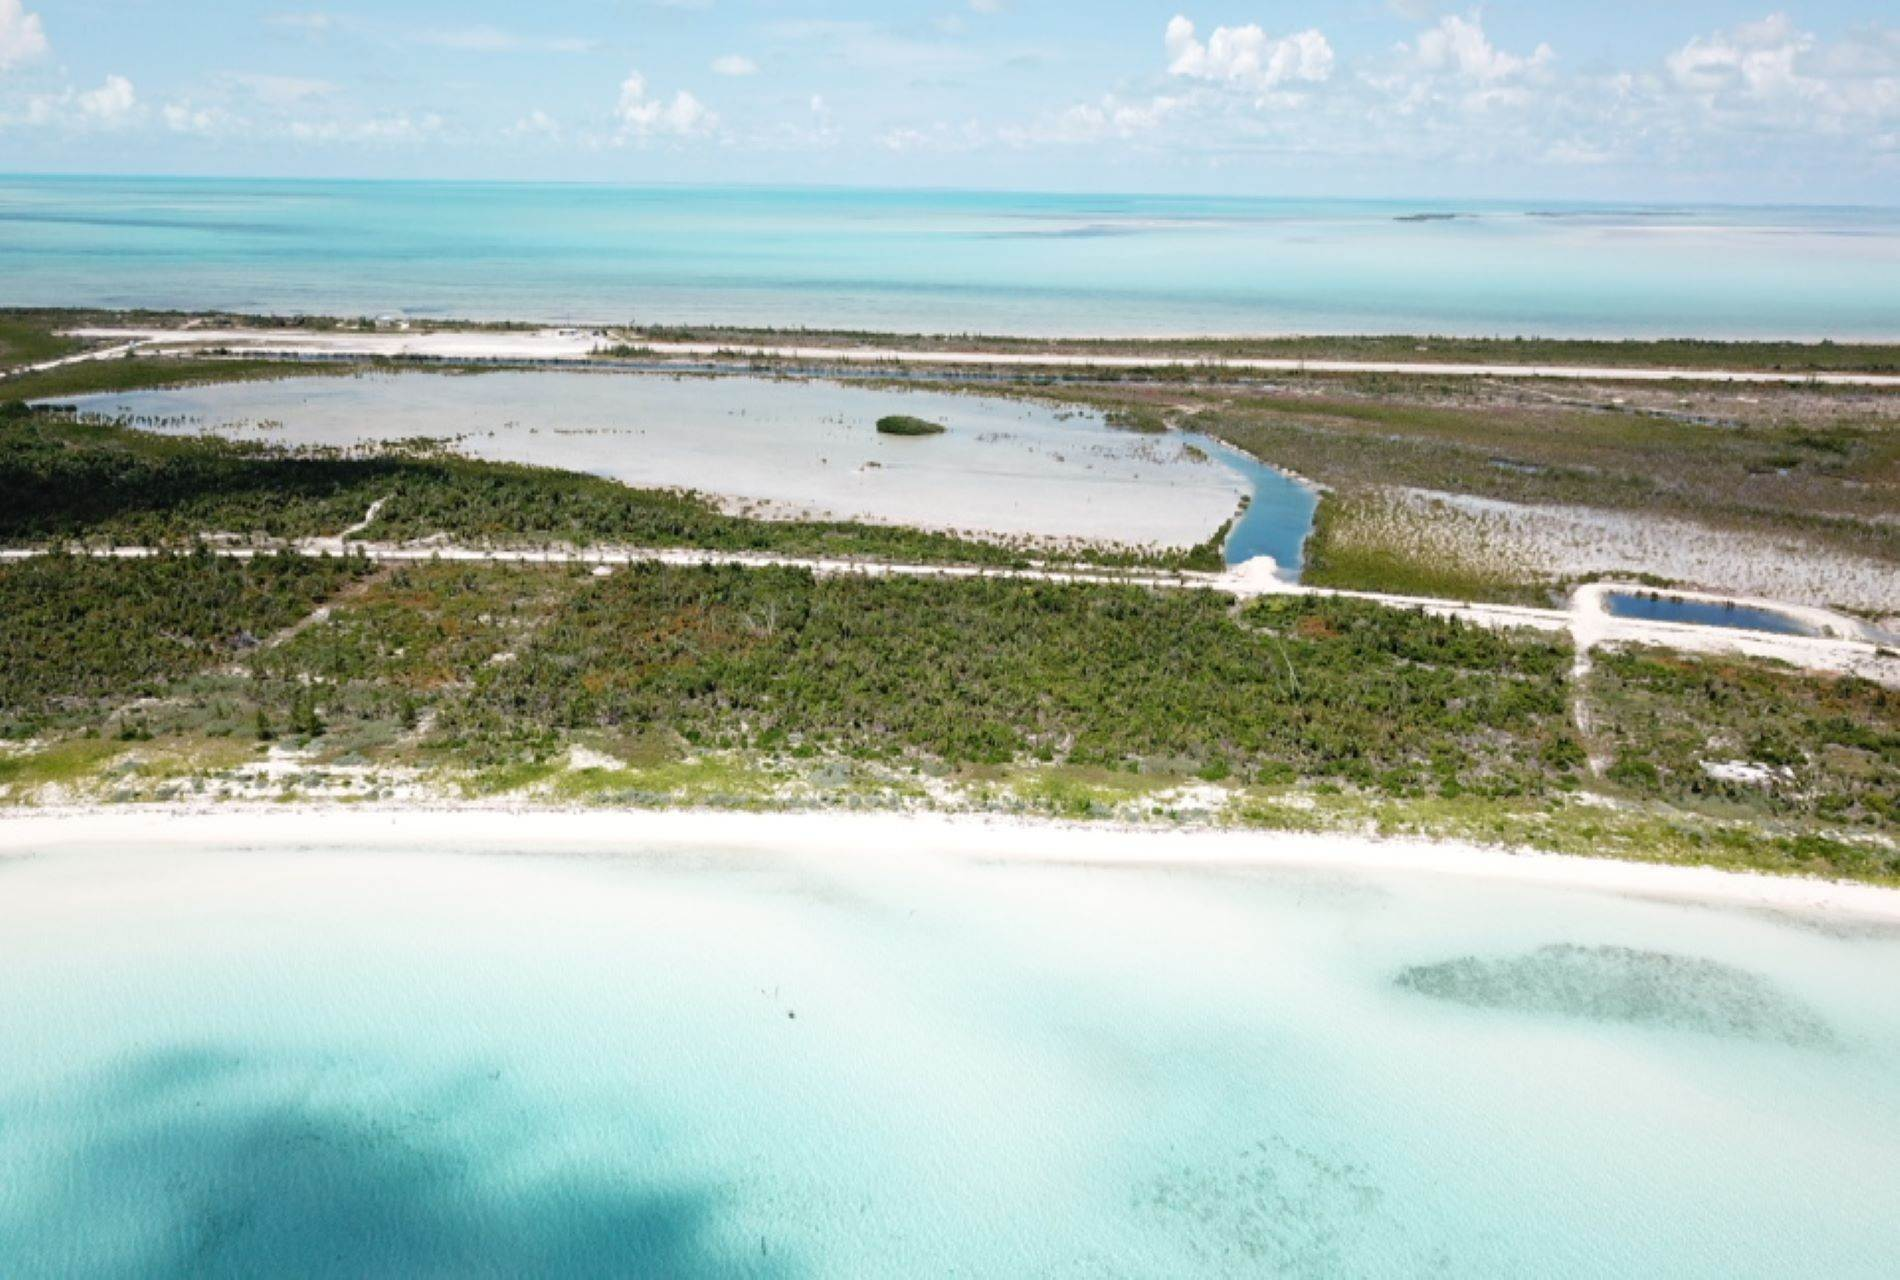 11. Land for Sale at Lot 29 Chub Cay - MLS 38796 Chub Cay, Berry Islands, Bahamas